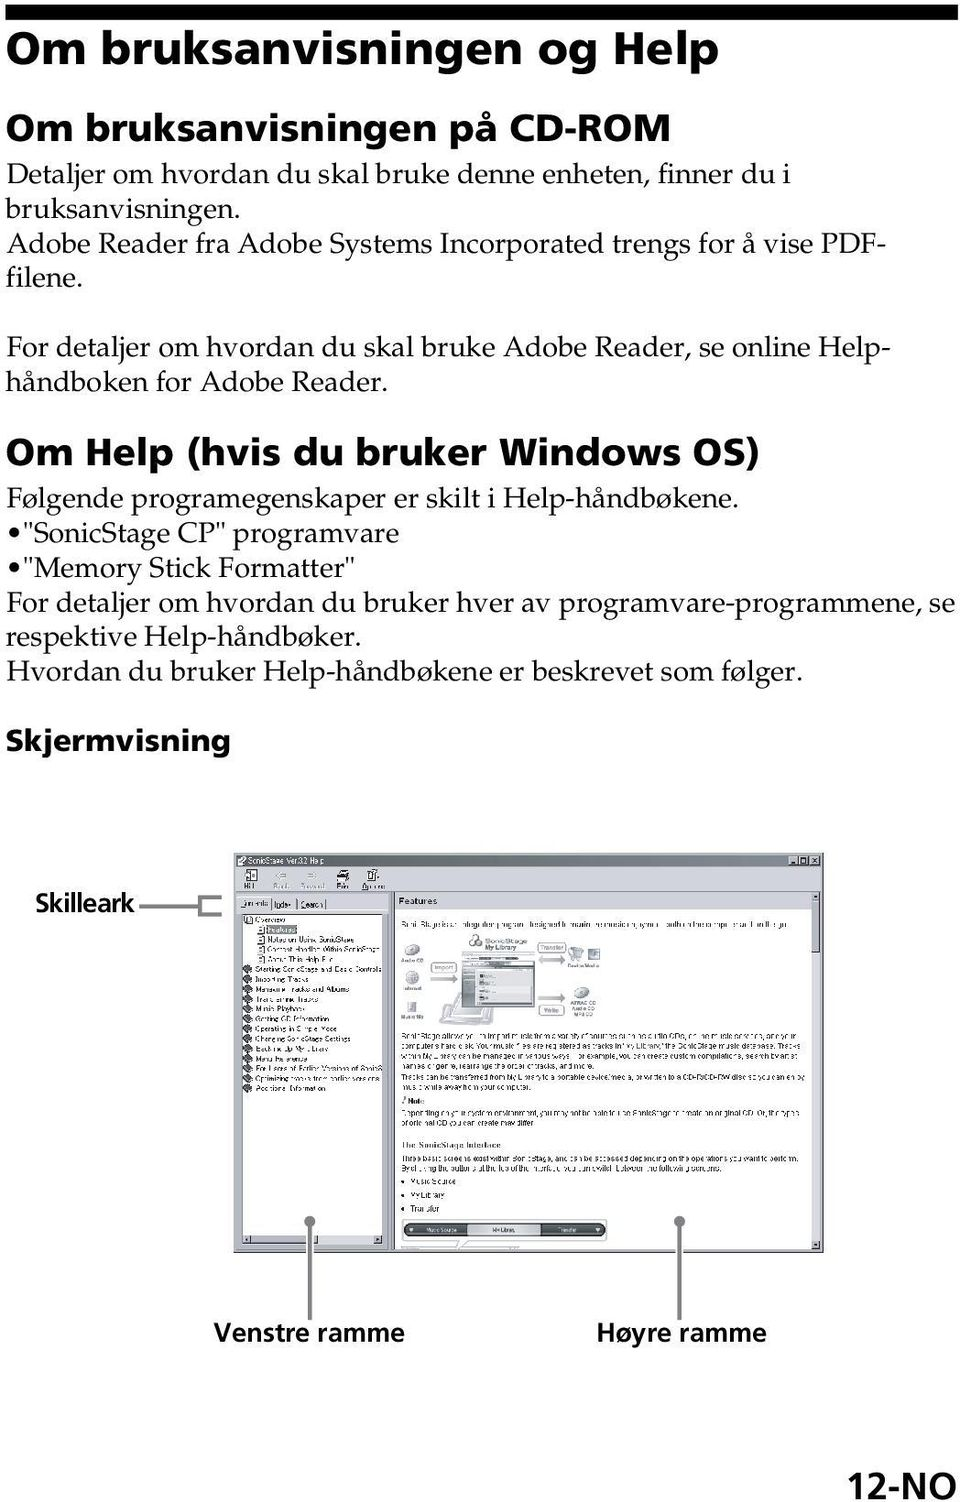 For detaljer om hvordan du skal bruke Adobe Reader, se online Helphåndboken for Adobe Reader.